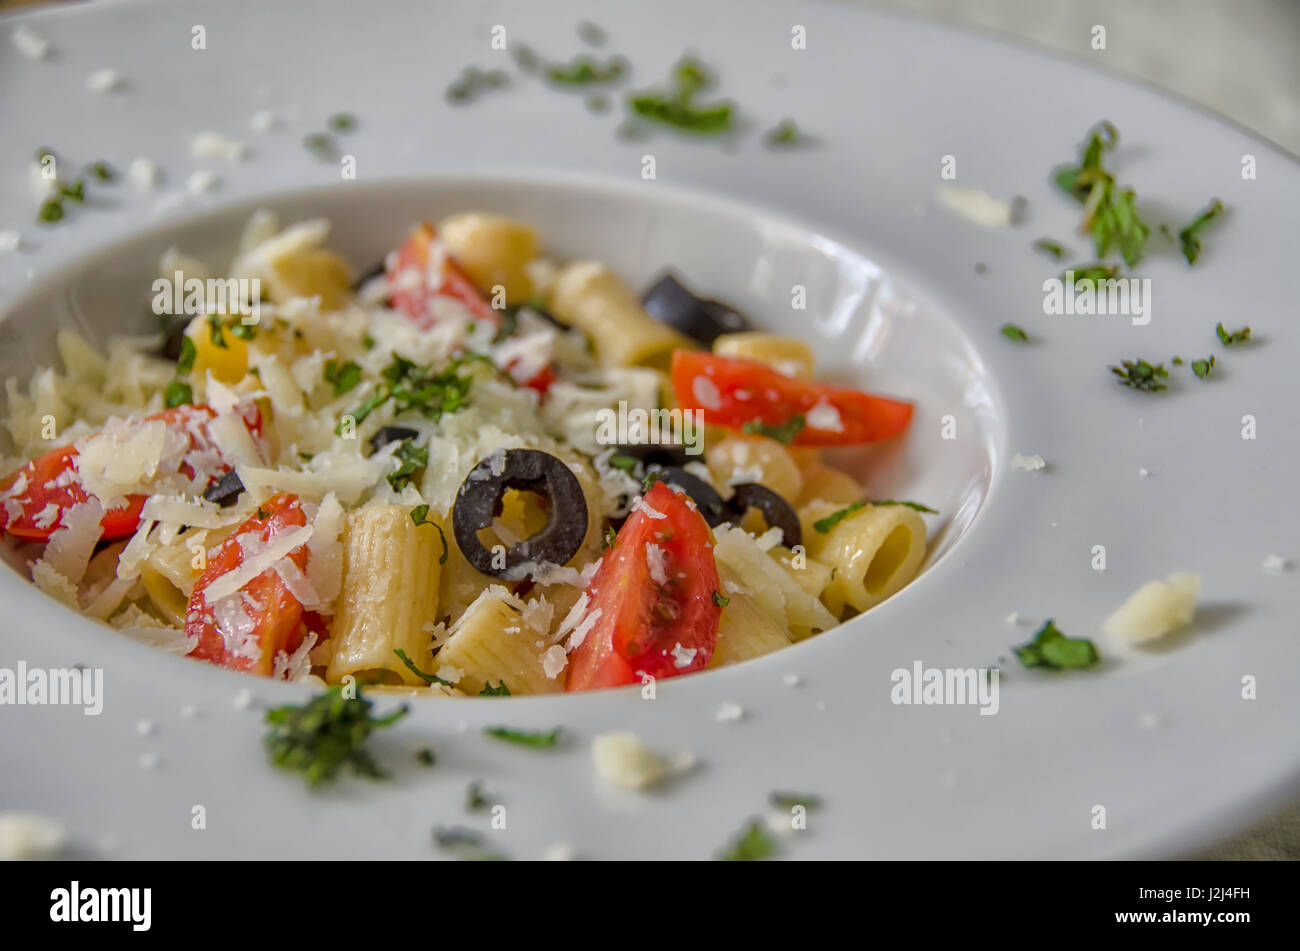 italian food - Stock Image